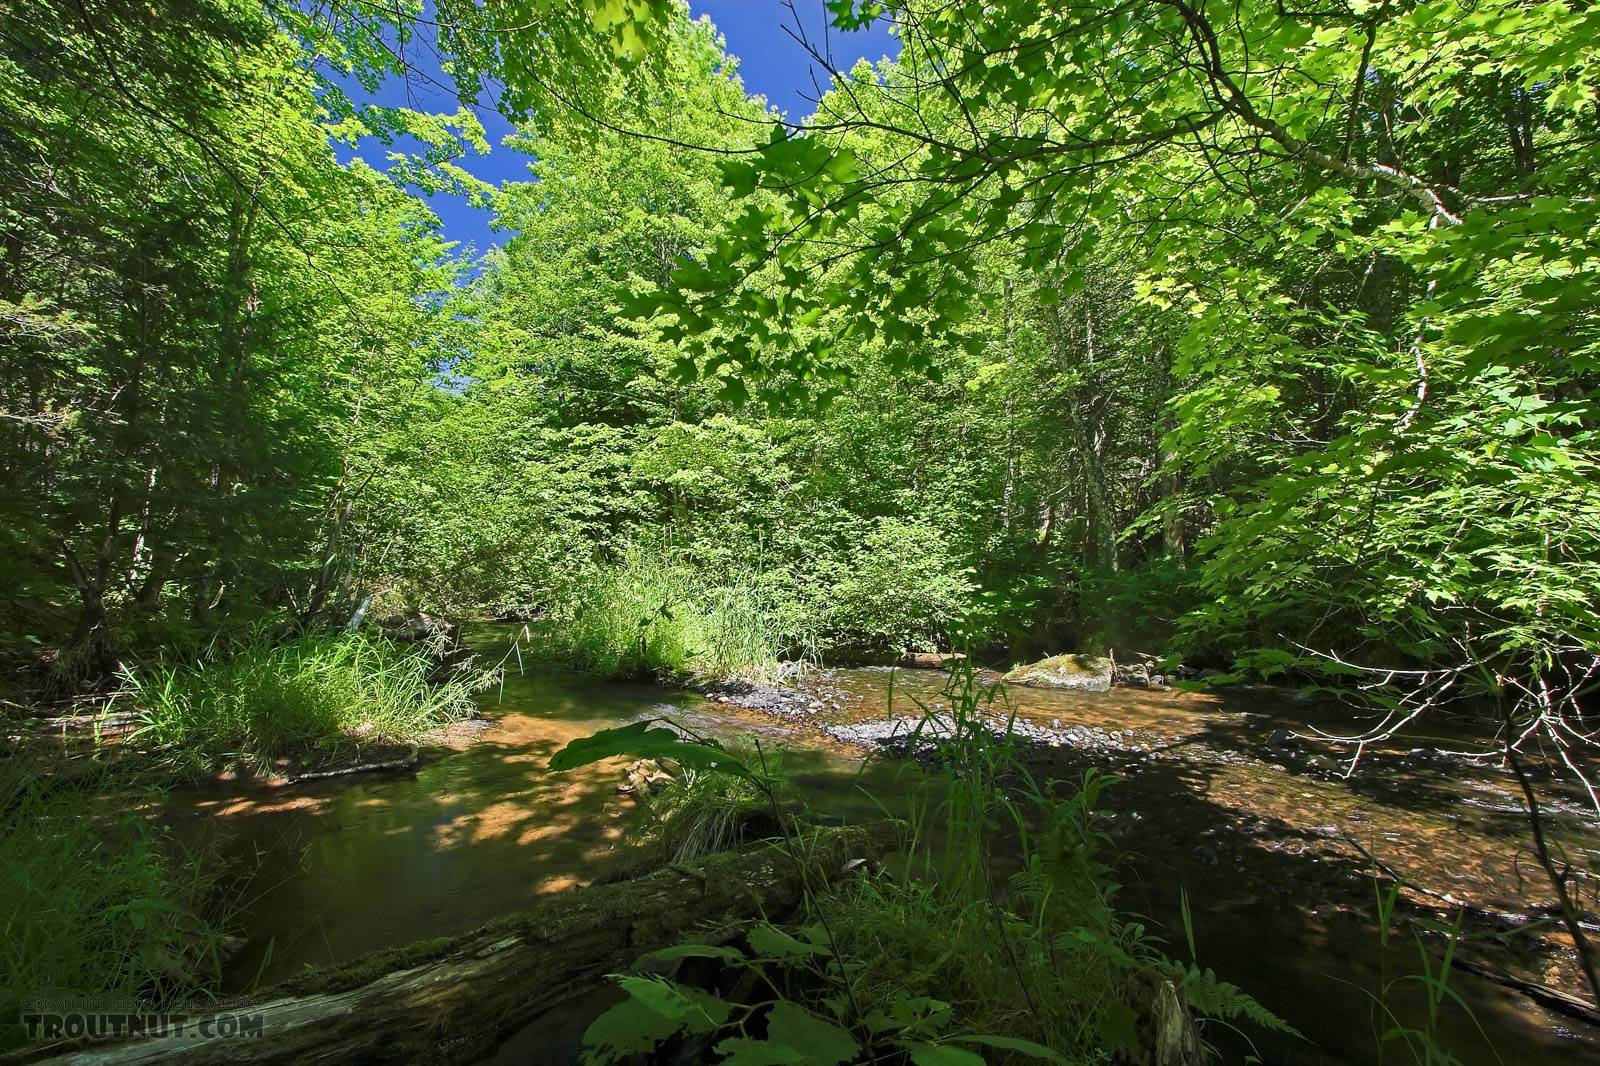 From Eighteenmile Creek in Wisconsin.